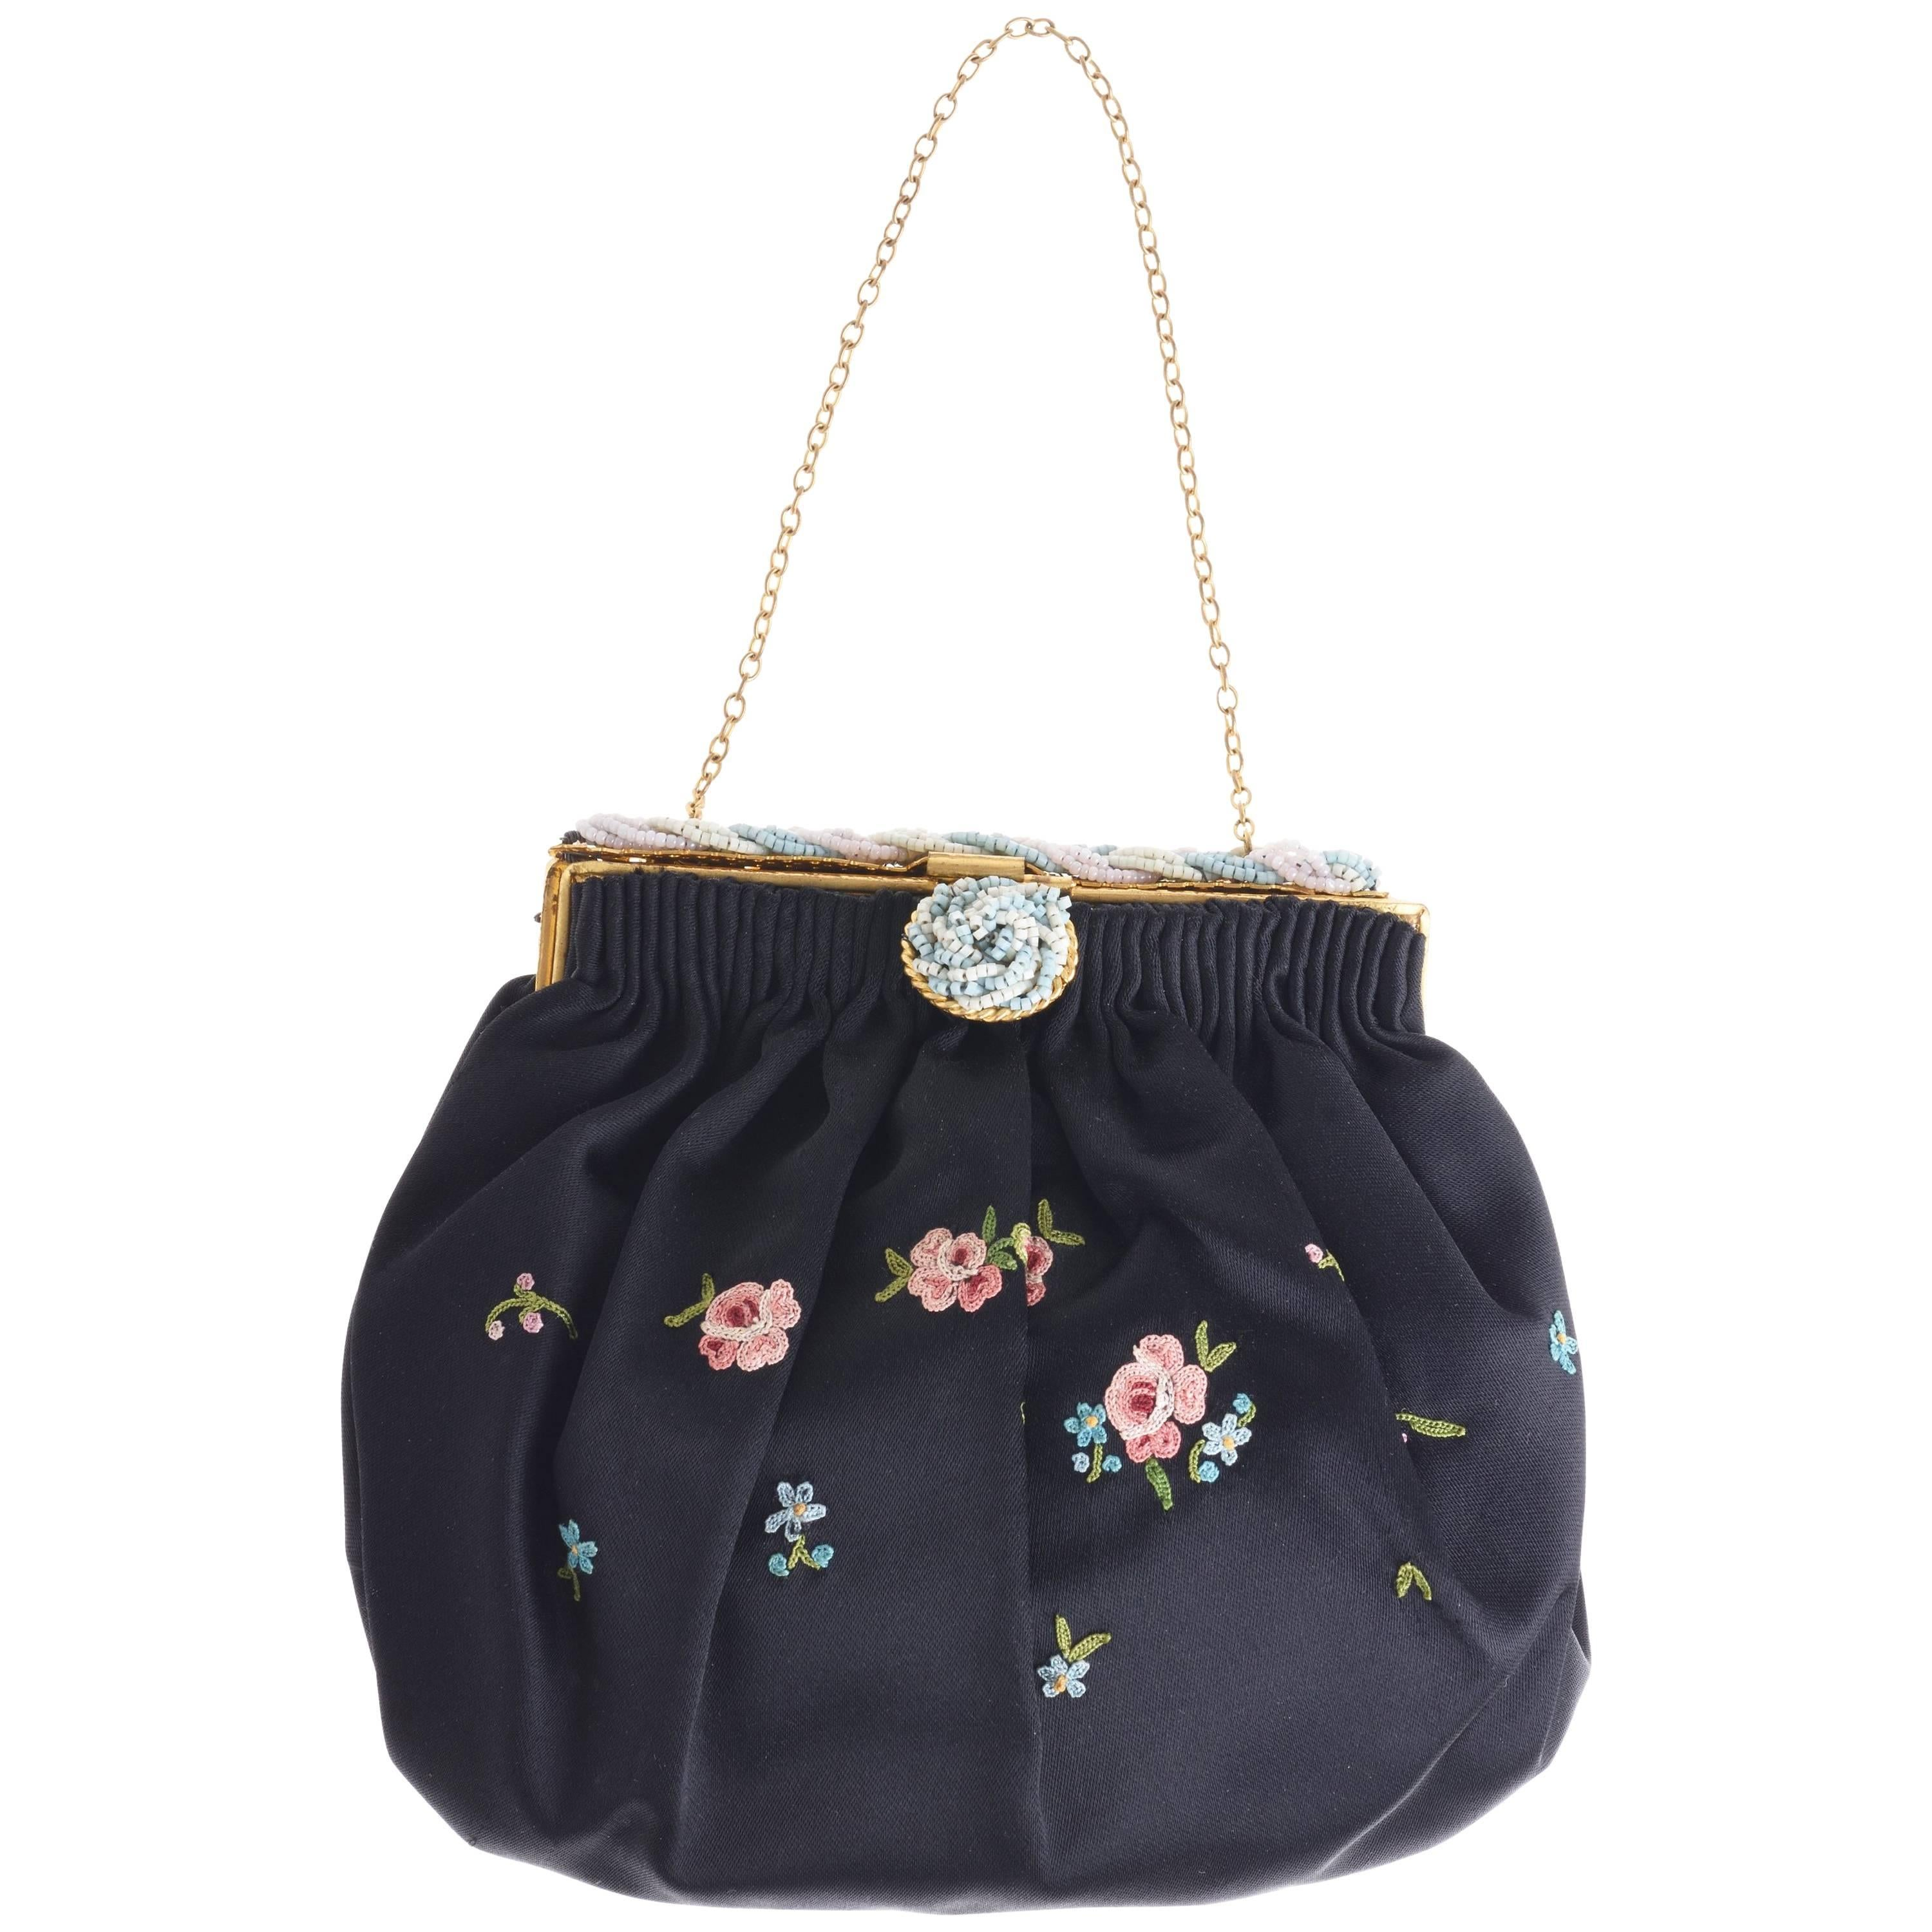 1stdibs 1920s French Black Silk Bag With Floral Embroidery & Hand Beadwork Frame aEGUr5V